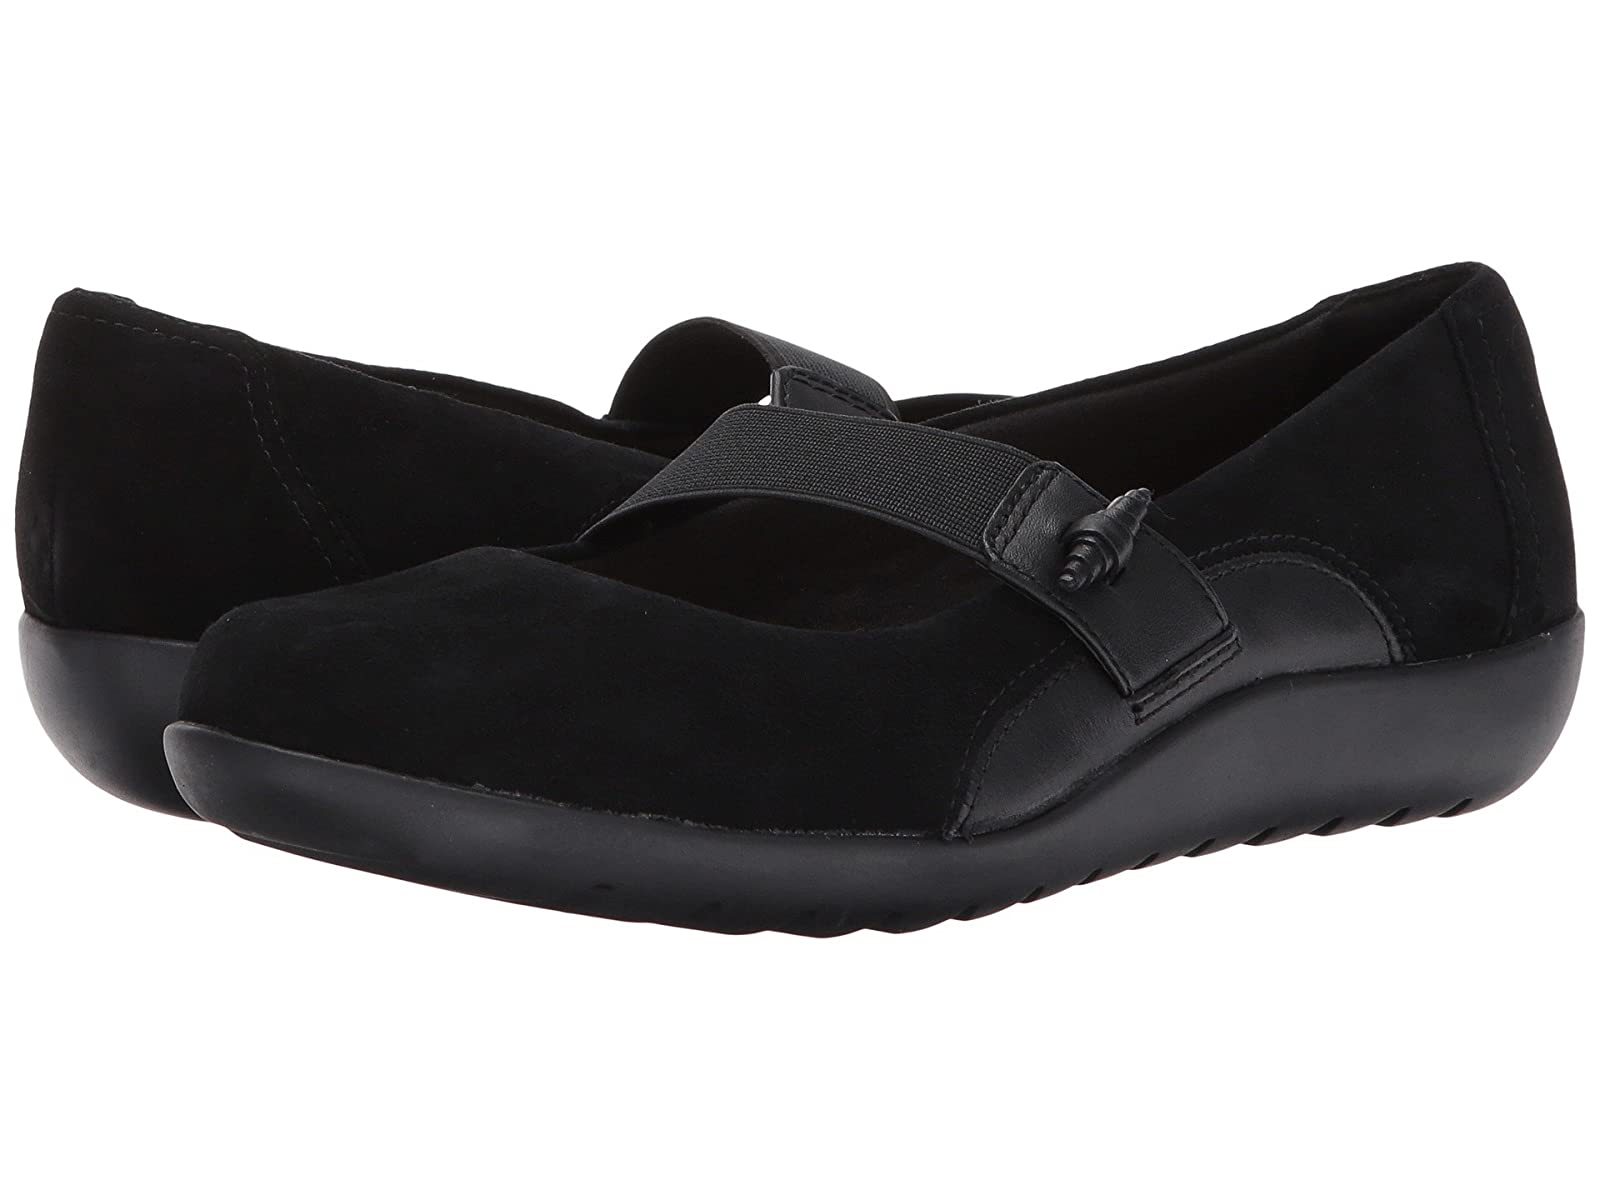 Men's/Women's:Clarks Name Medora Frost :International Big Name Men's/Women's:Clarks 62692c